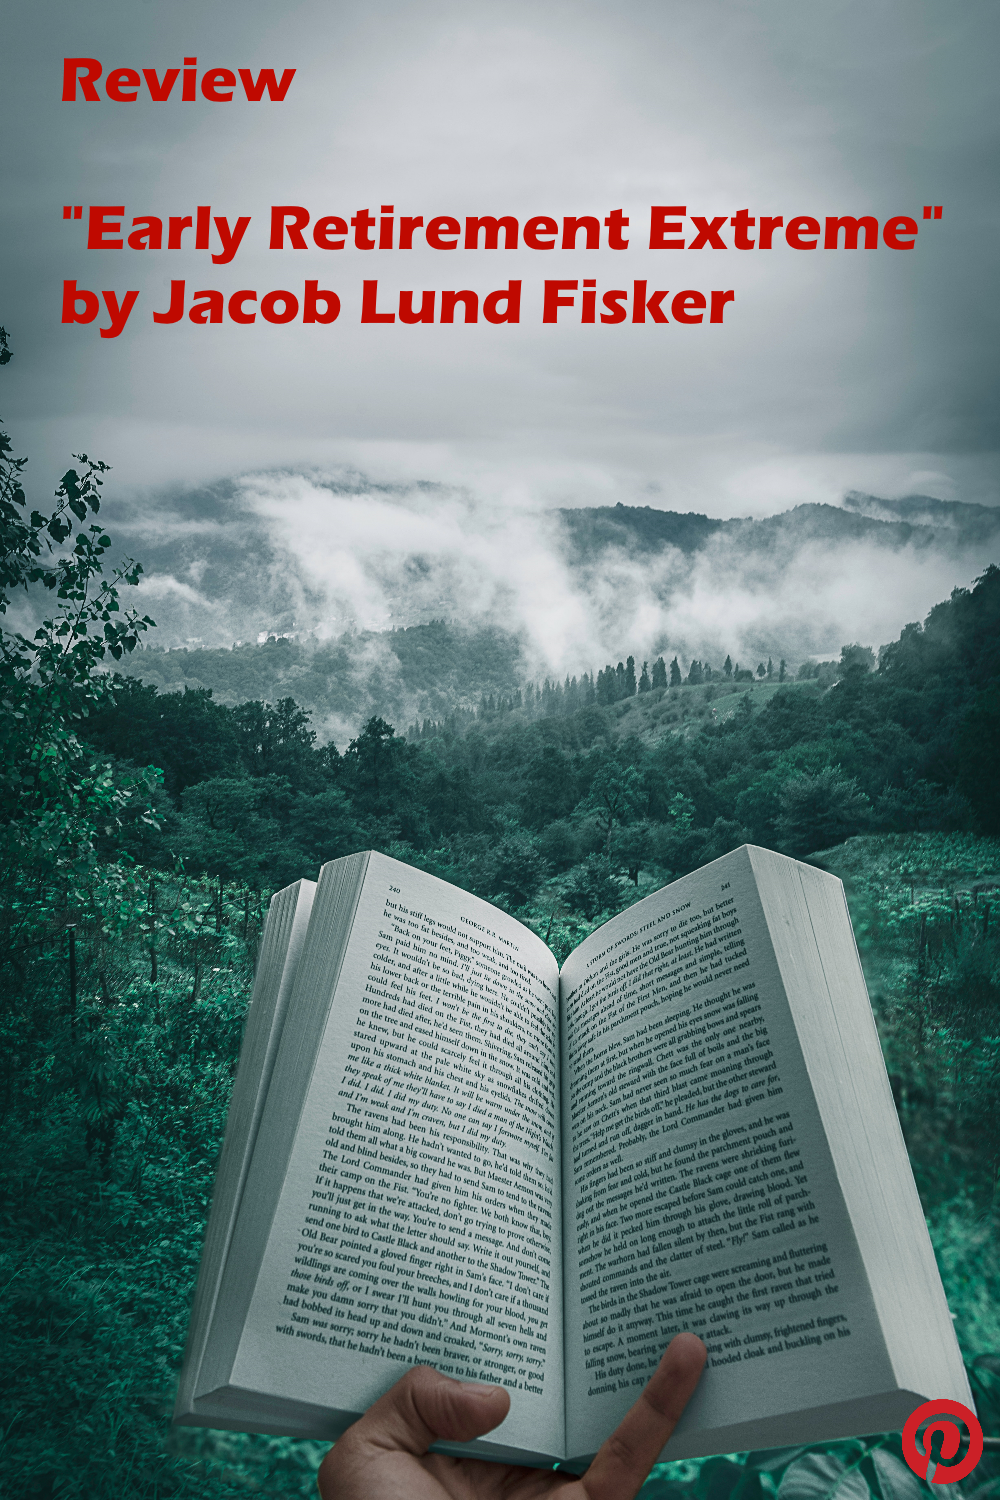 Review - Early Retirement Extreme  The book detailing the groundbreaking approach to living a financially independent lifestyle & forecasting the FIRE movement by Jacob Lund Fisker.